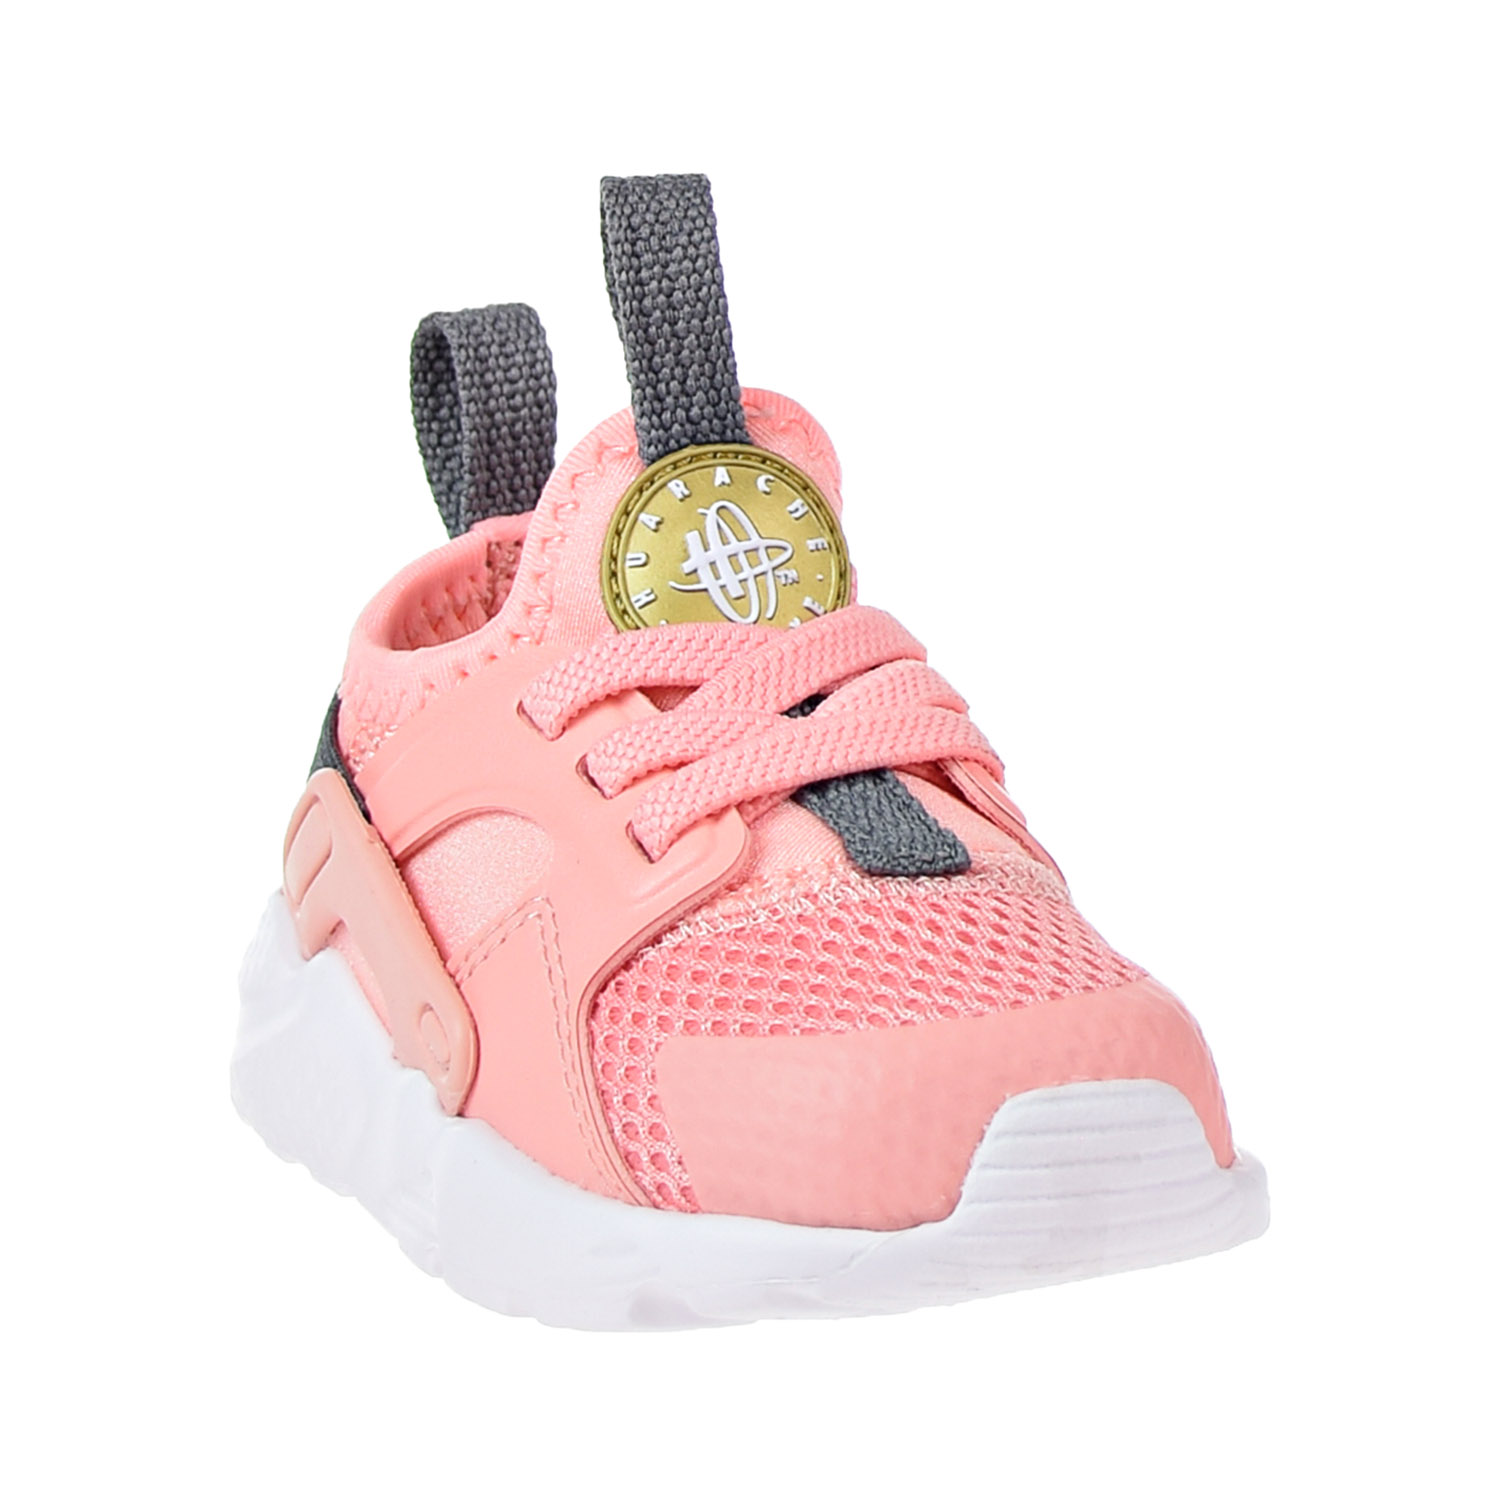 87dda1dfa2e44 ... coupon code for nike huarache run ultra little kids shoes bleached  coral metallic gold 859595 600